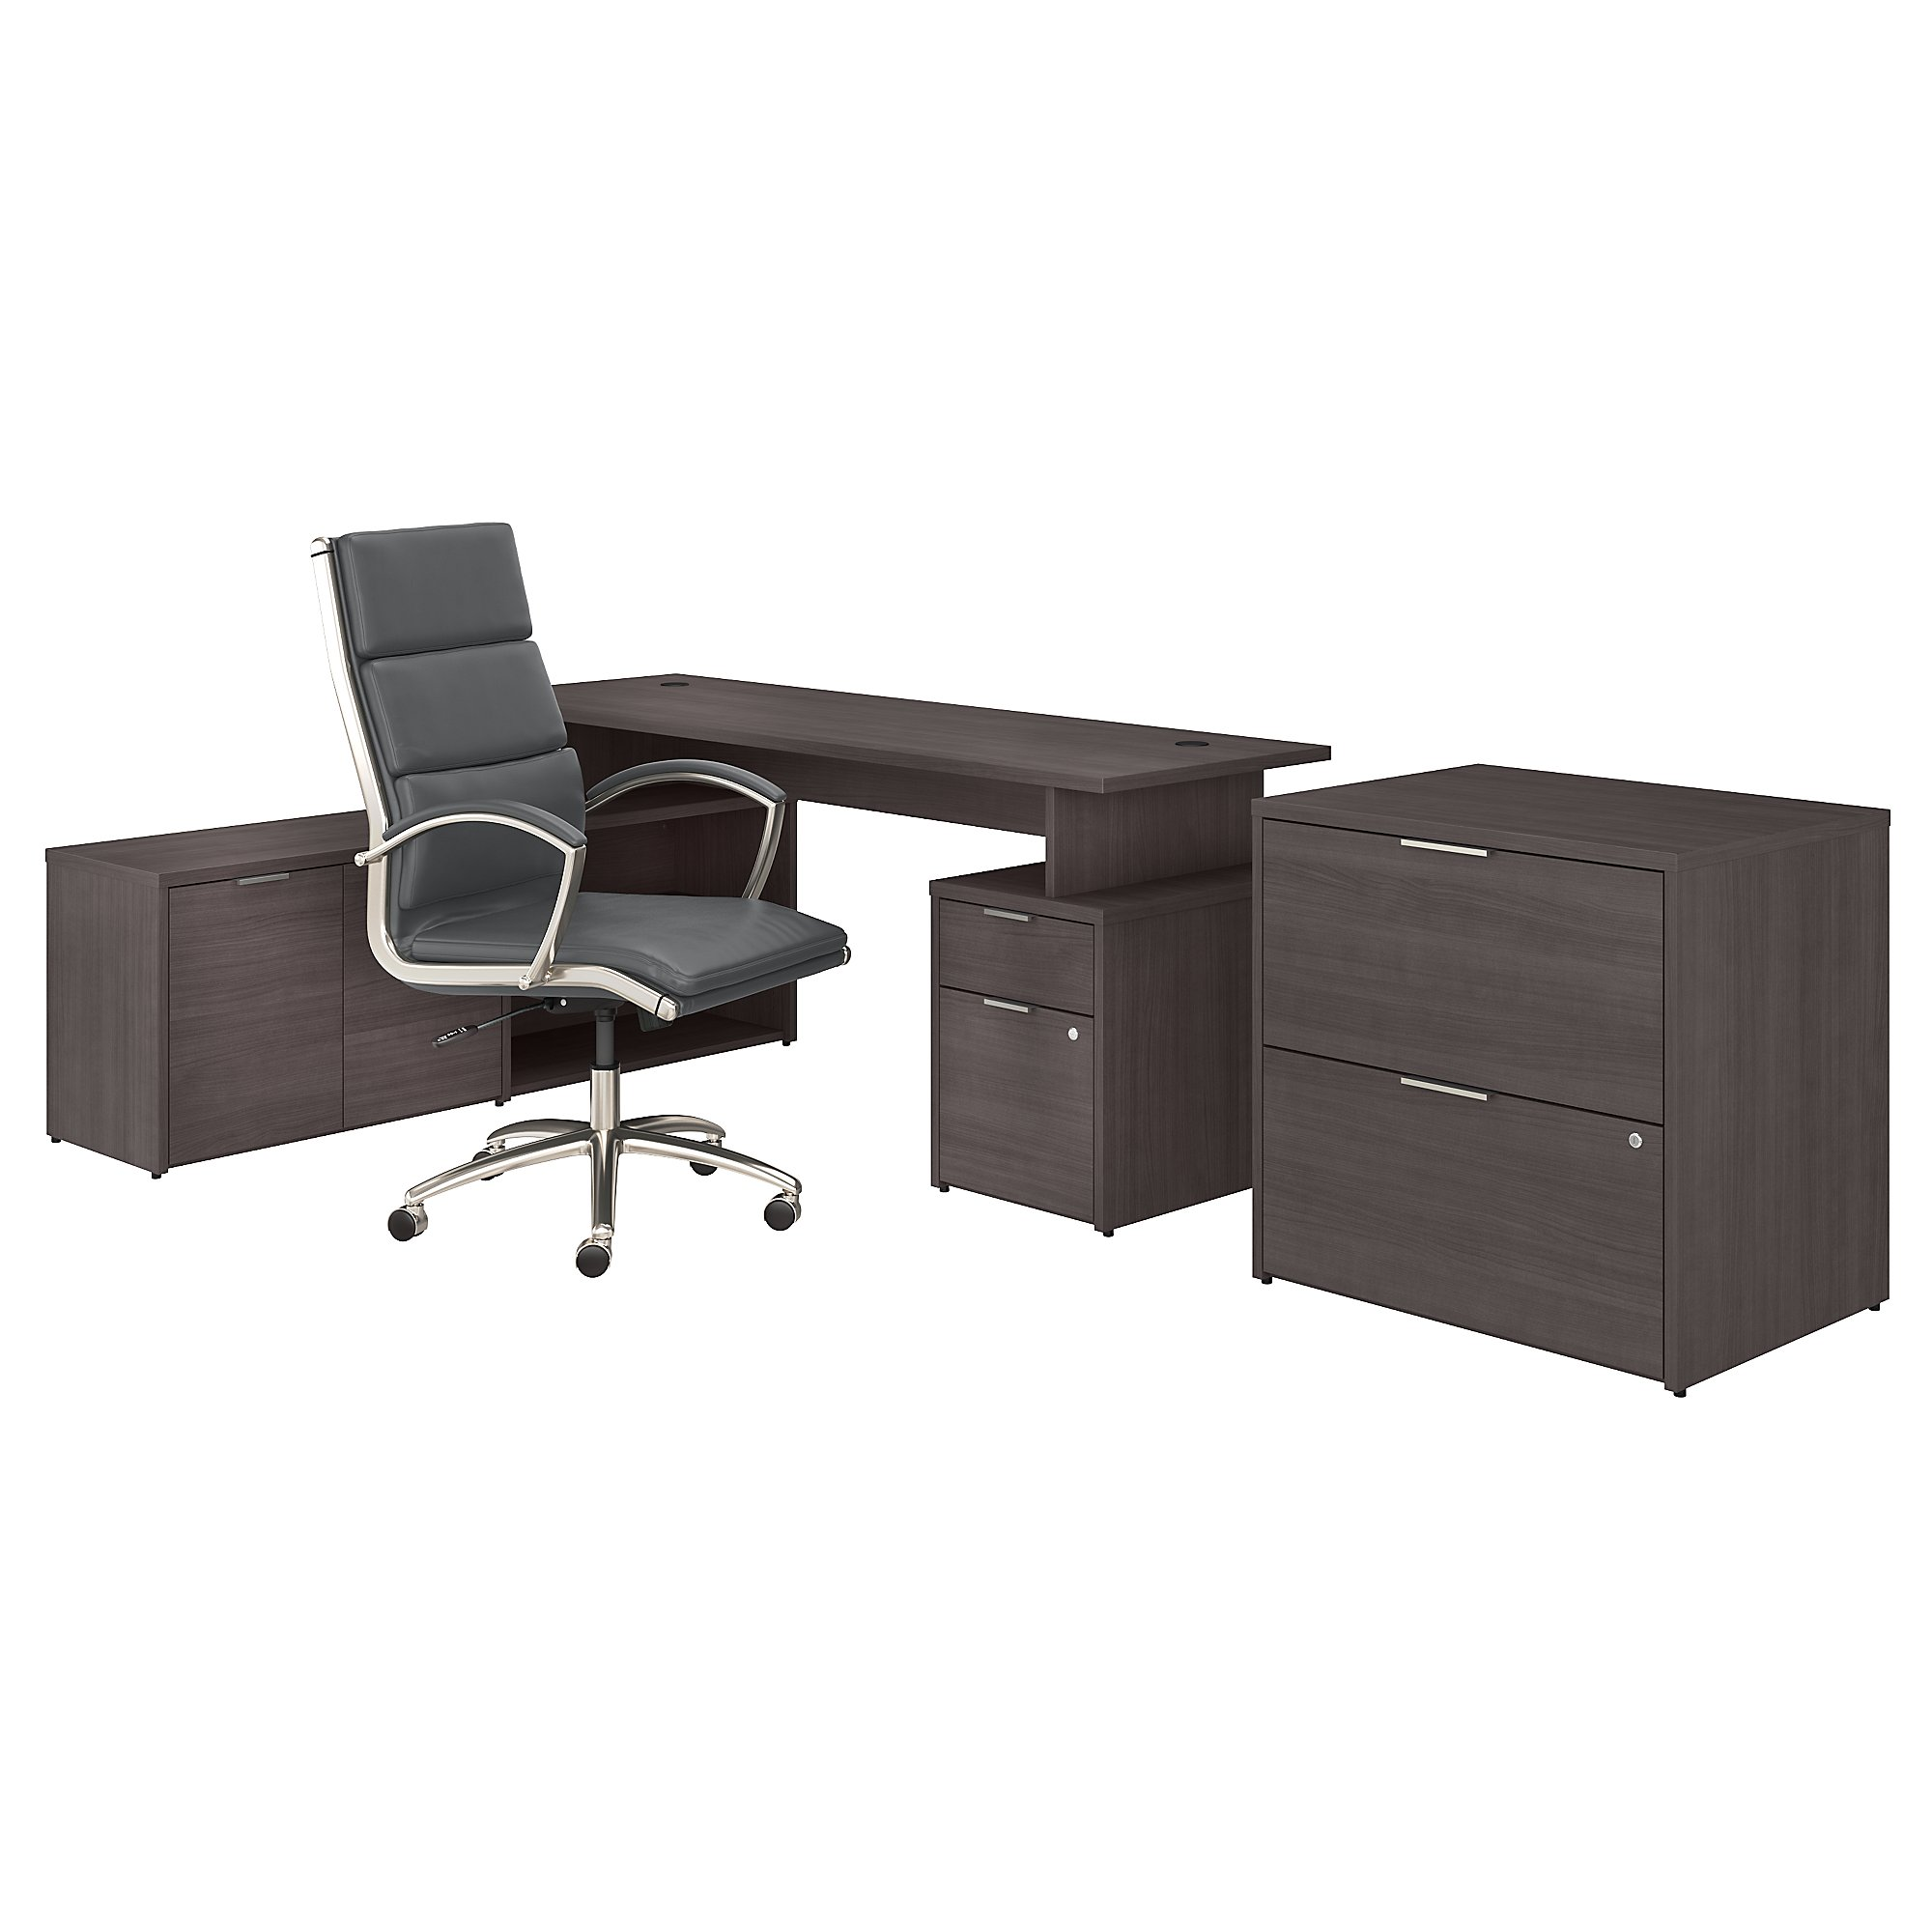 jamestown storm gray desk configuration with chair